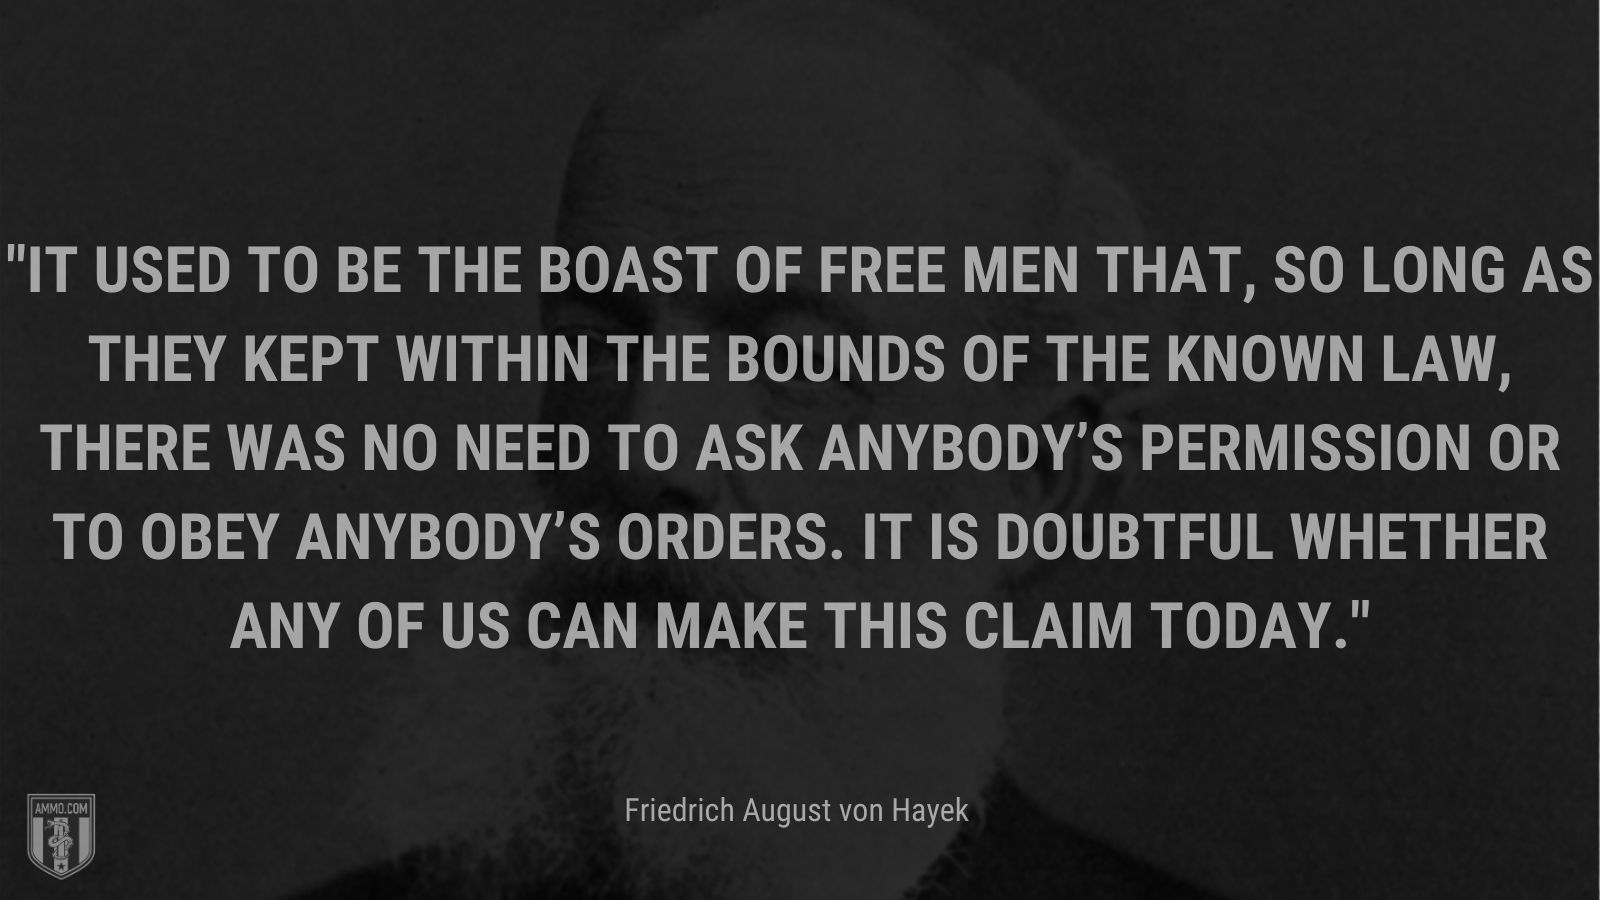 """""""It used to be the boast of free men that, so long as they kept within the bounds of the known law, there was no need to ask anybody's permission or to obey anybody's orders. It is doubtful whether any of us can make this claim today. - Friedrich August von Hayek"""